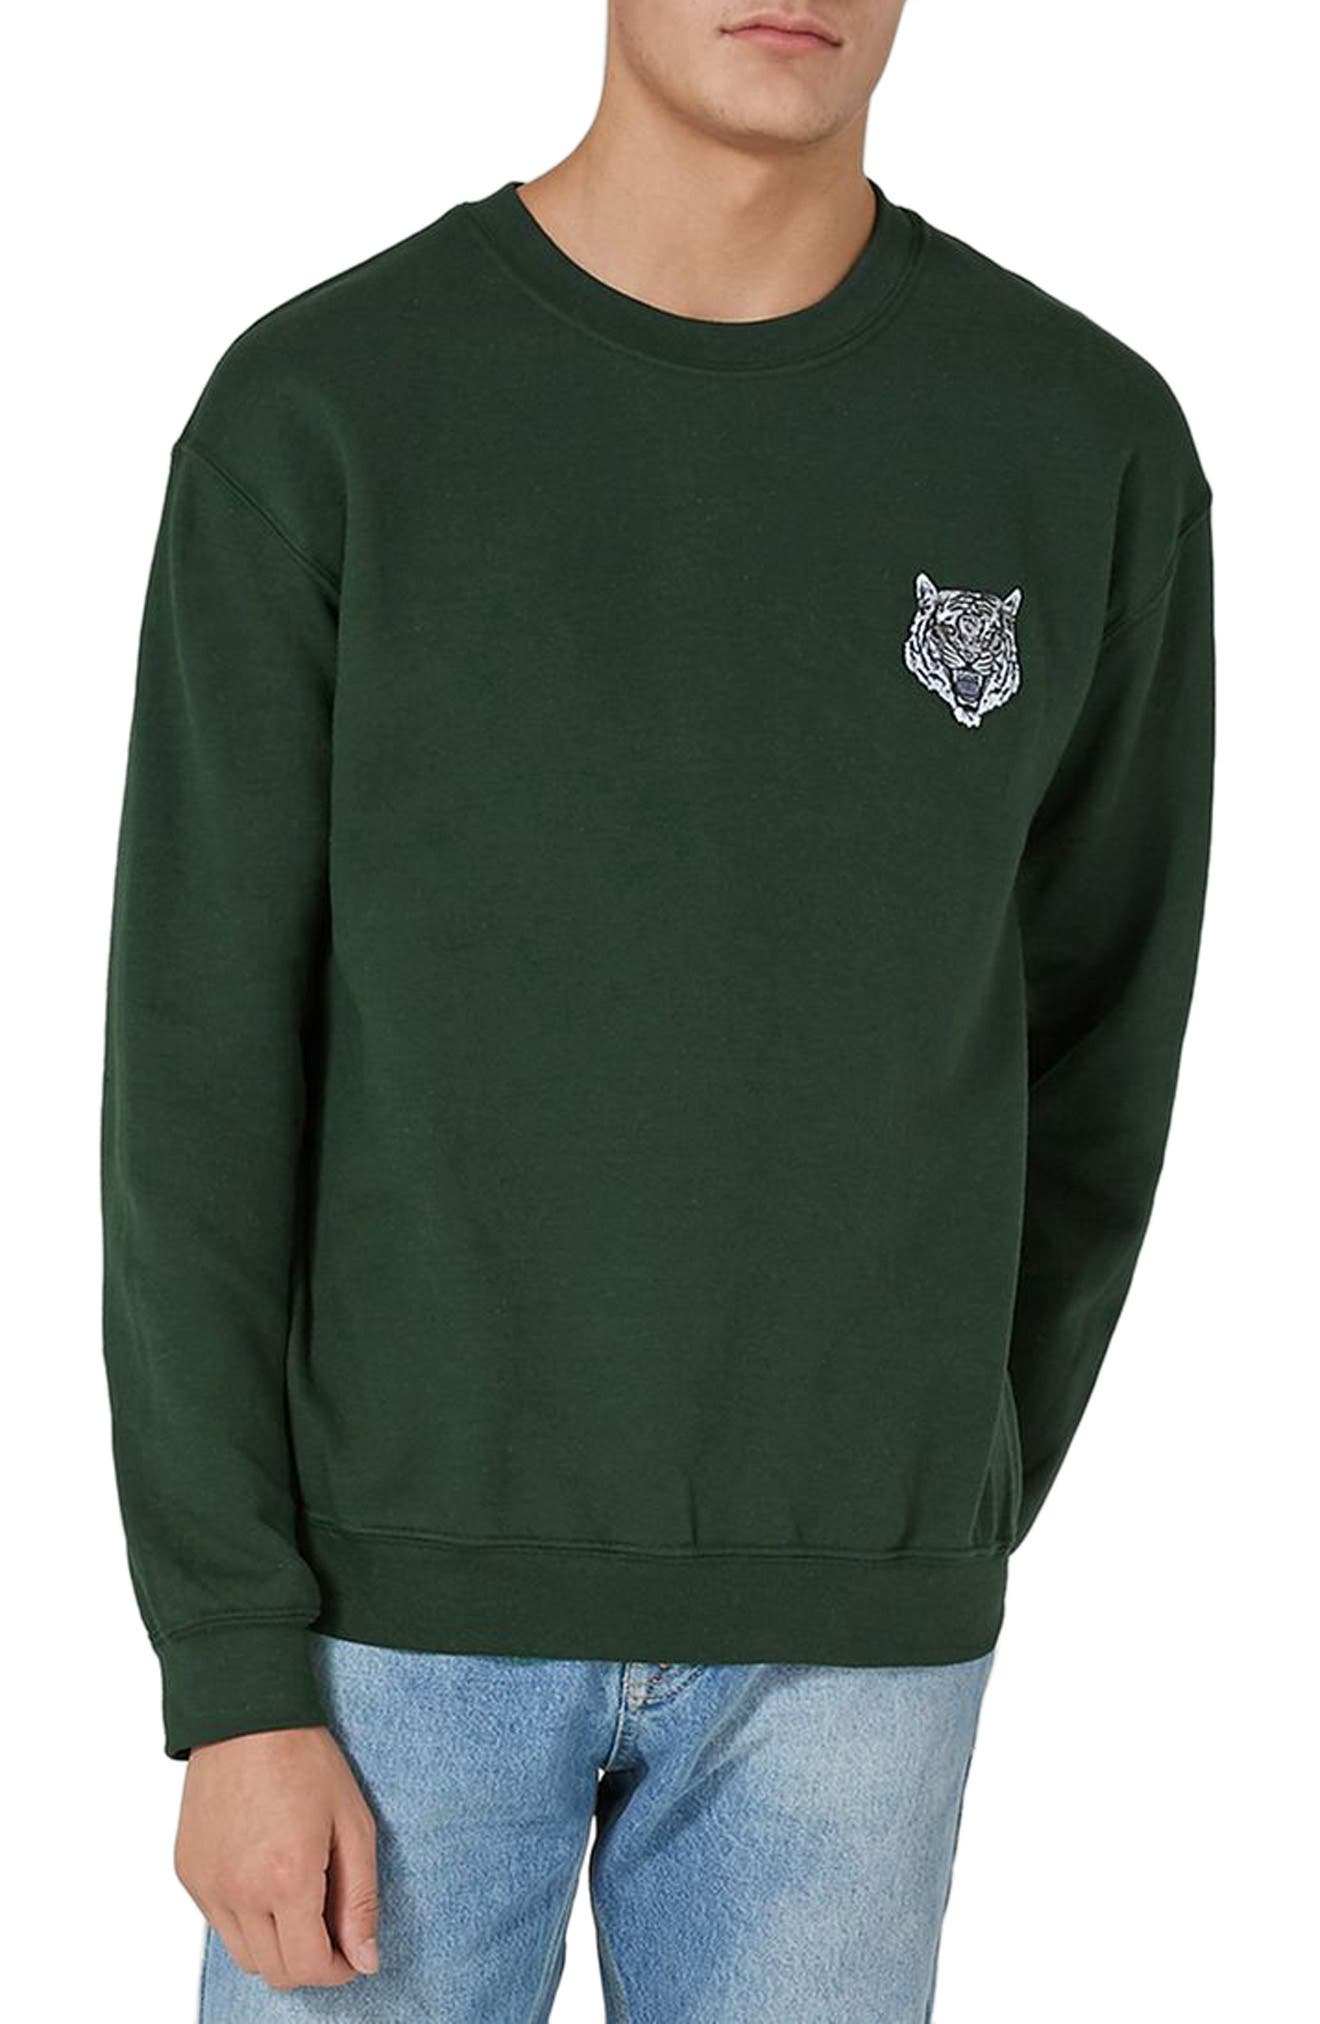 Tiger Patch Sweatshirt,                             Main thumbnail 1, color,                             300